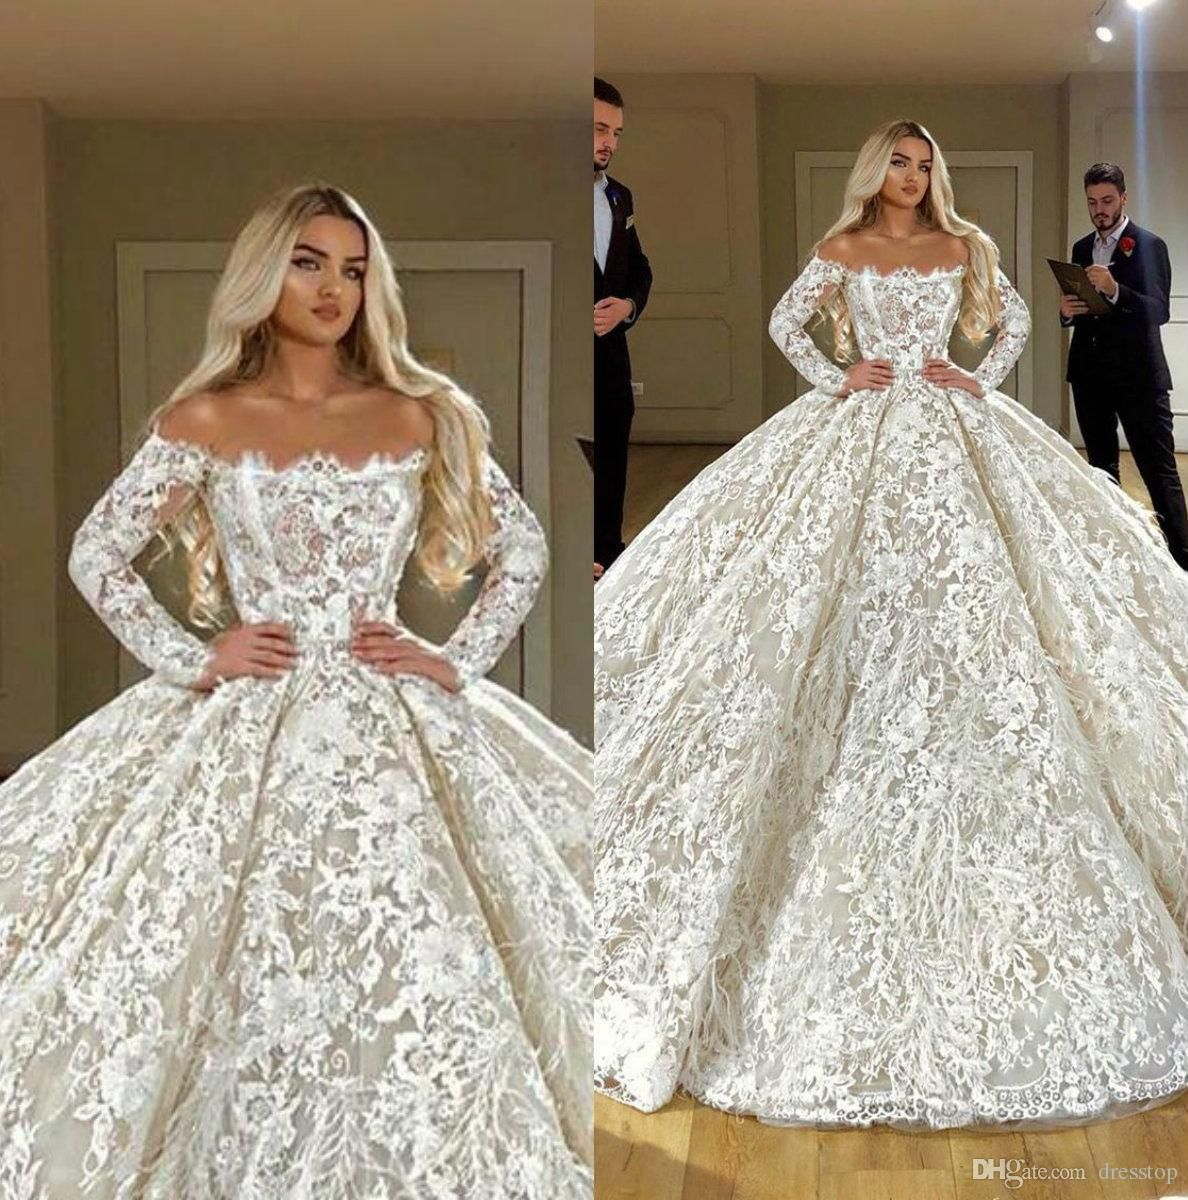 Luxury Lace Ball Gown Wedding Dresses With Feathers Backless Long Sleeve Bridal Gowns Plus Size Dubai Arab Wedding Dress Custom Cheap Wedding Dresses Plus Size Long Sleeve Bridal Gown Chic